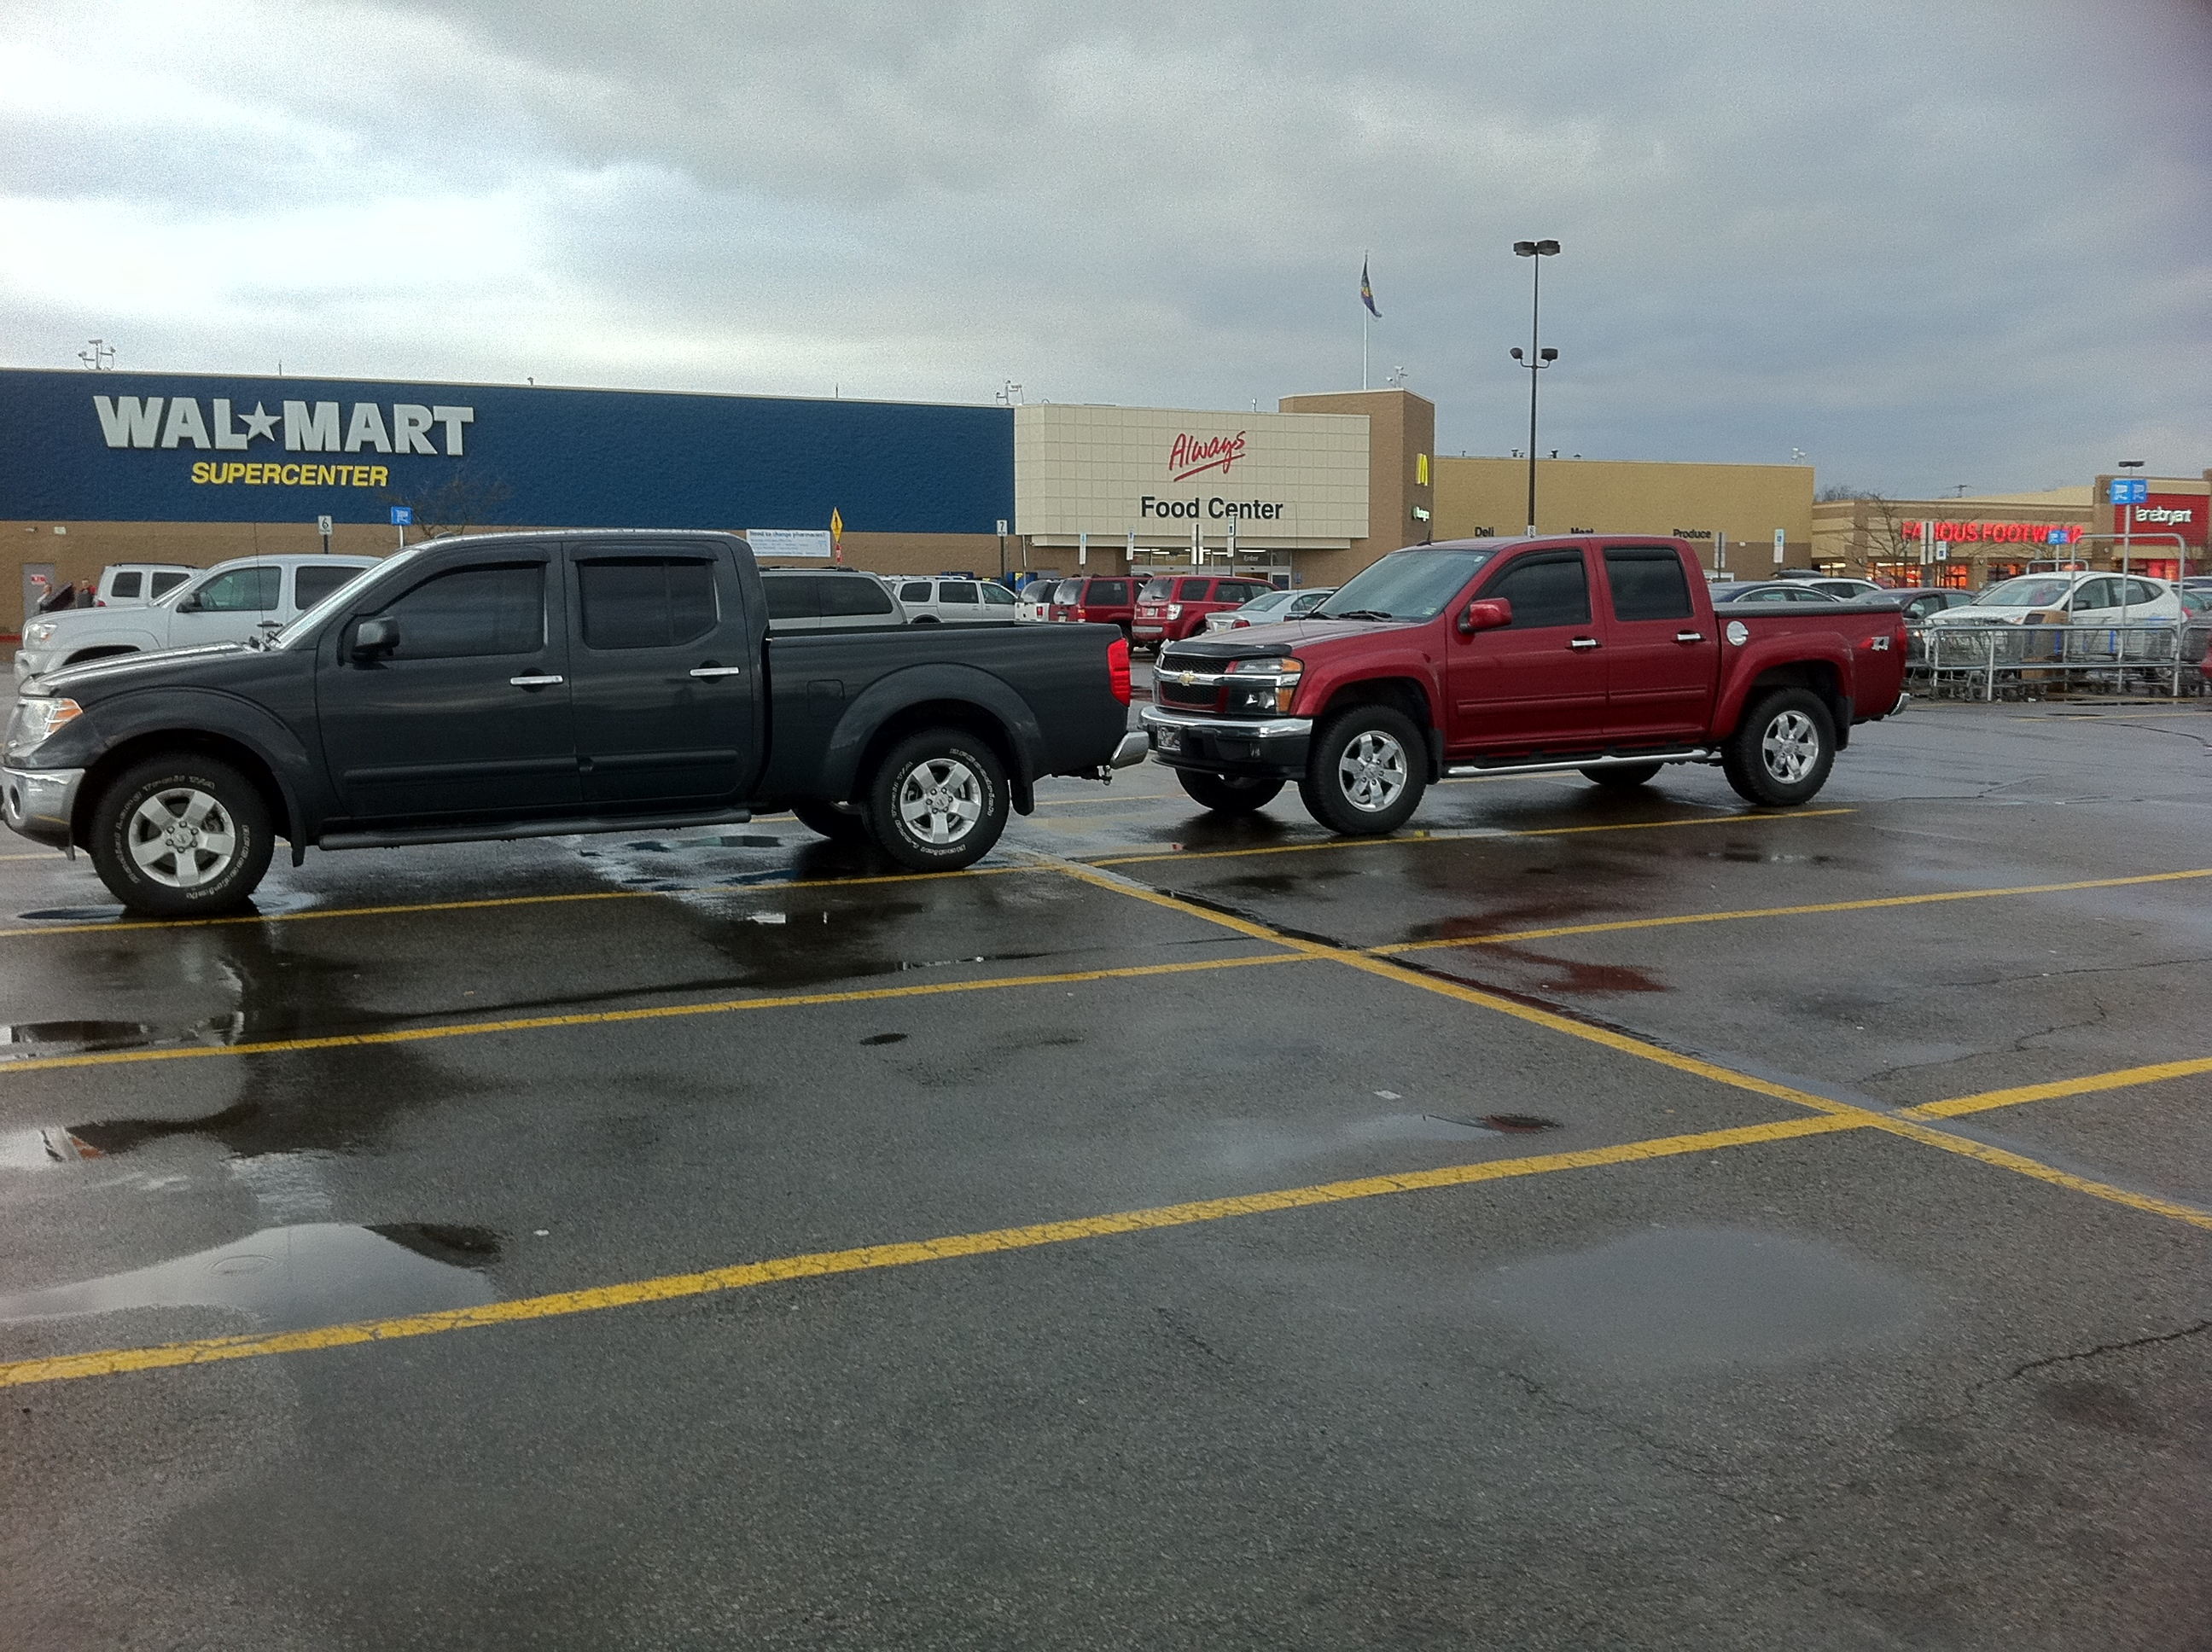 Nightarmor11 frontier crew cab long bed 4x4 sv nissan frontier forum at walmart in new castle pa comparing this colorado to my frontier there is no comparison and sadly they are not selling either vanachro Images